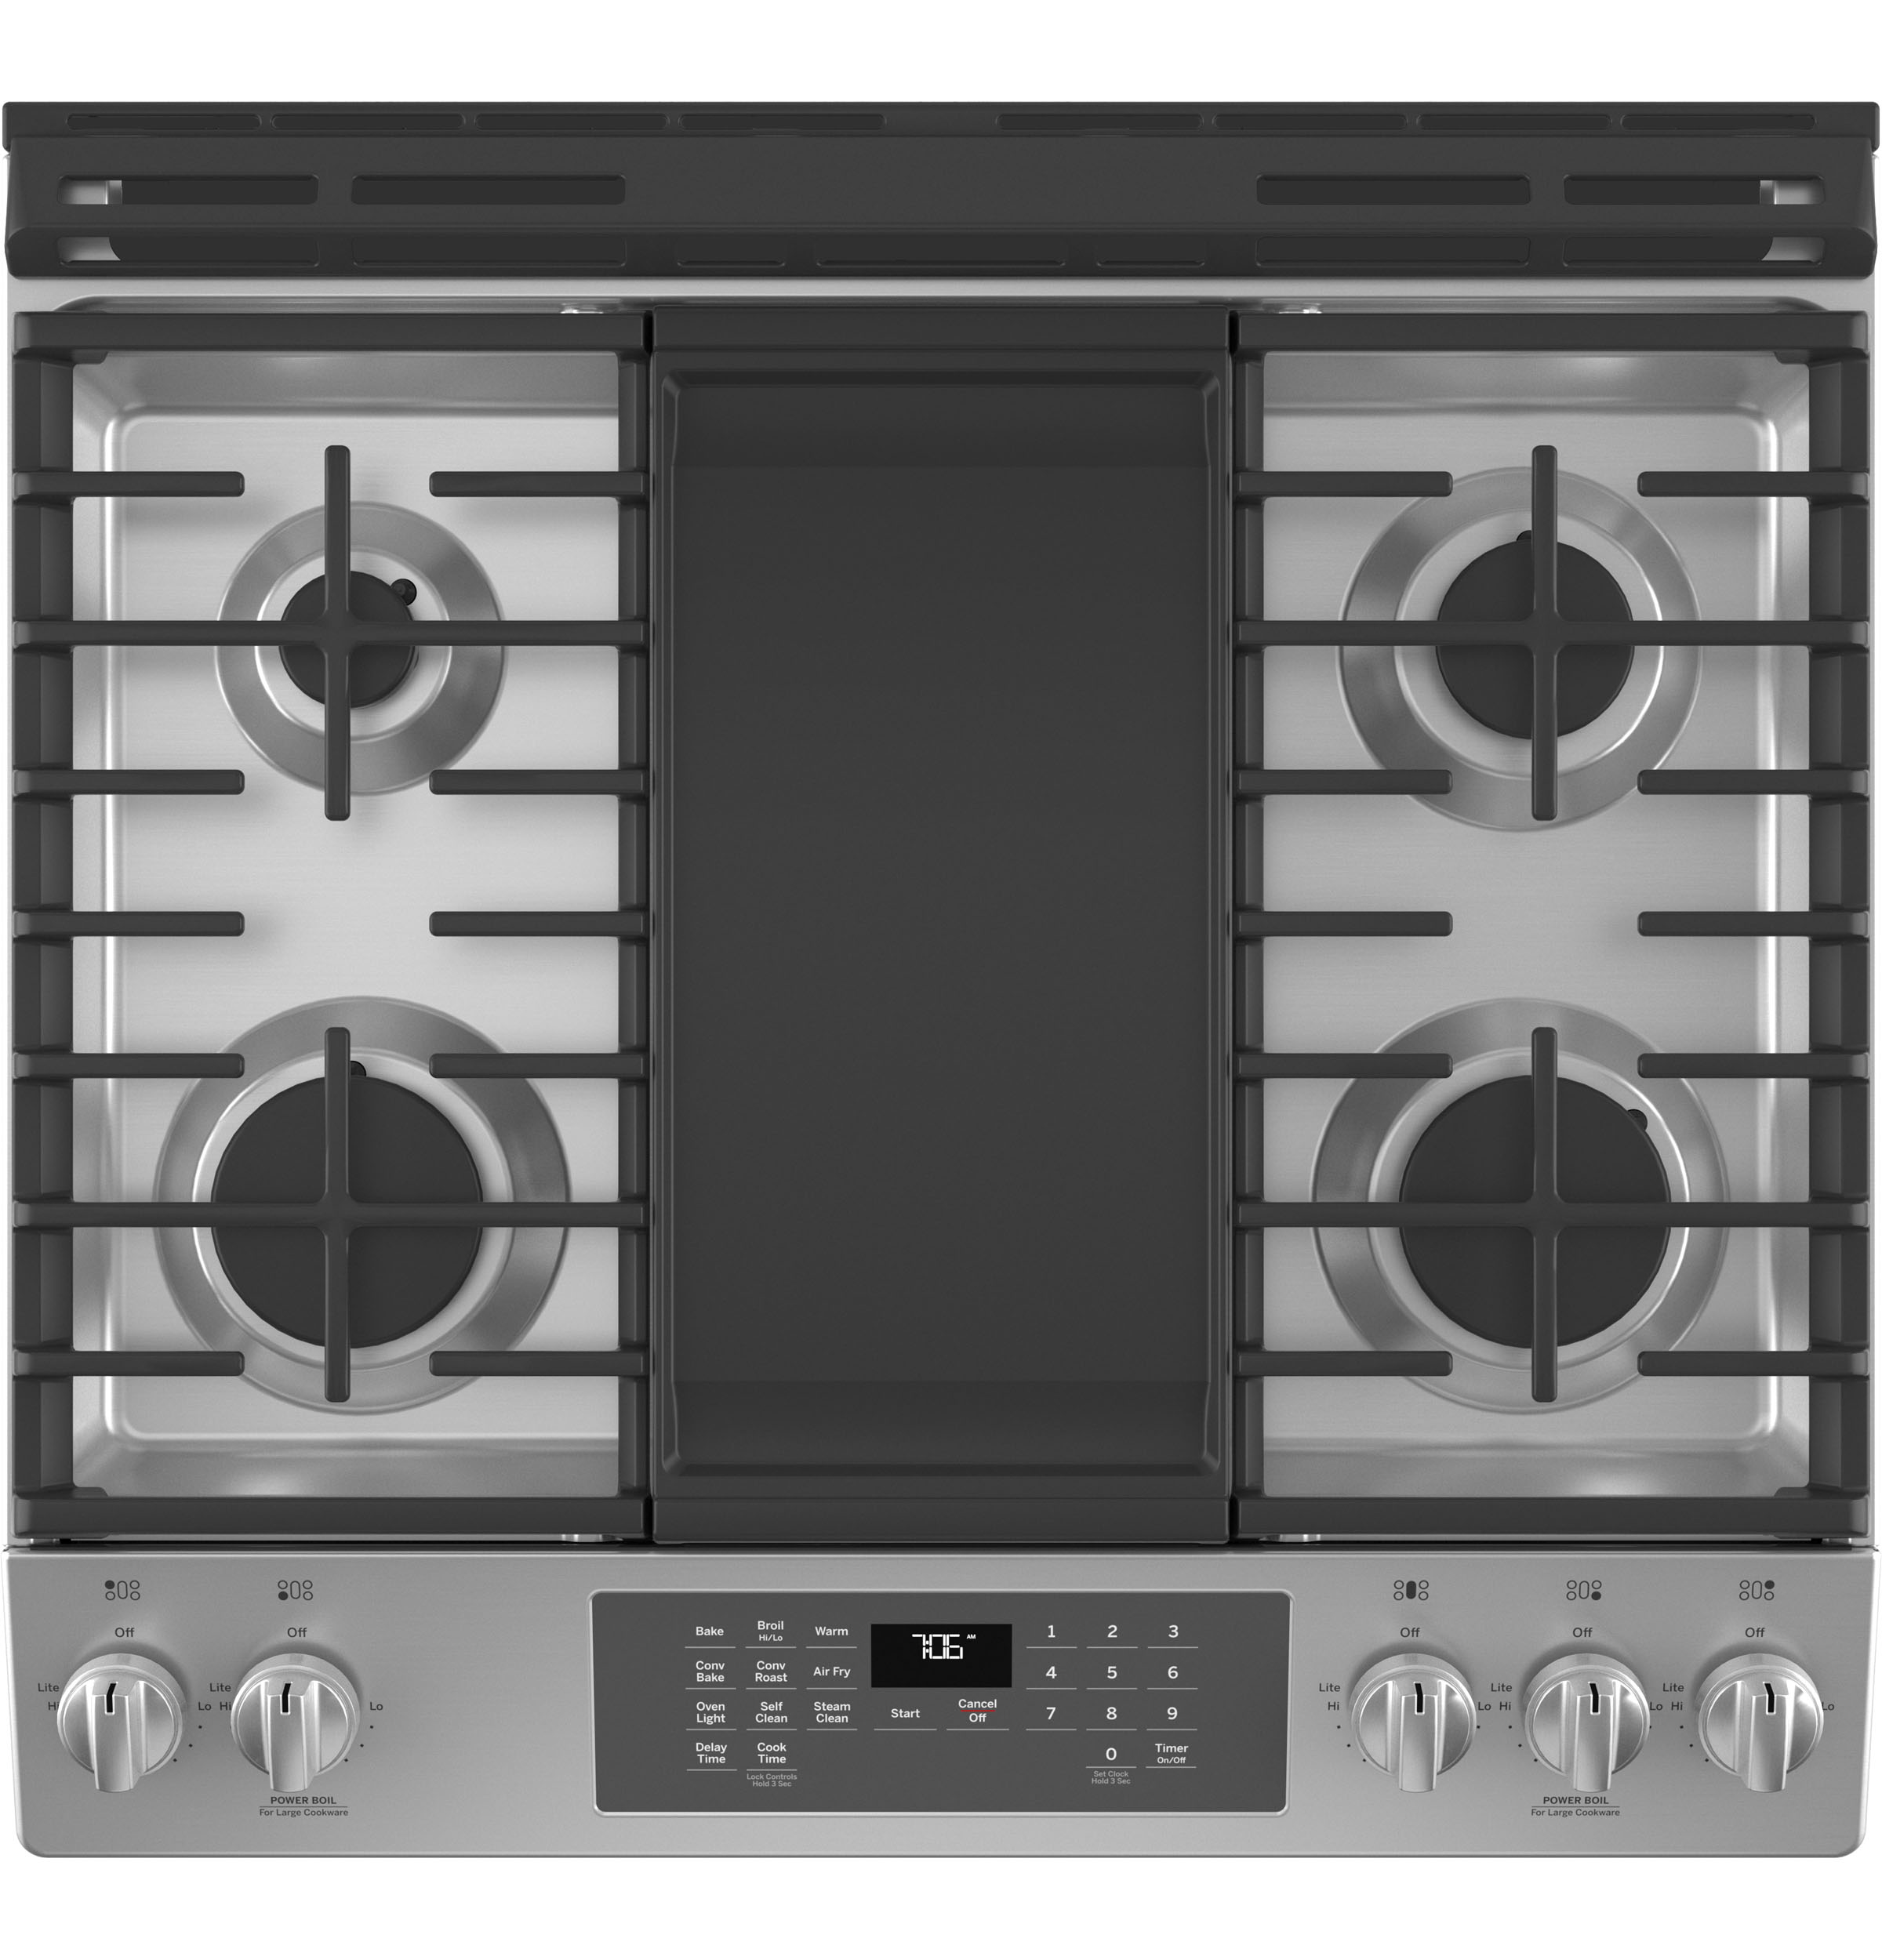 """Model: JGS760SPSS   GE GE® 30"""" Slide-In Front-Control Convection Gas Range with No Preheat Air Fry"""